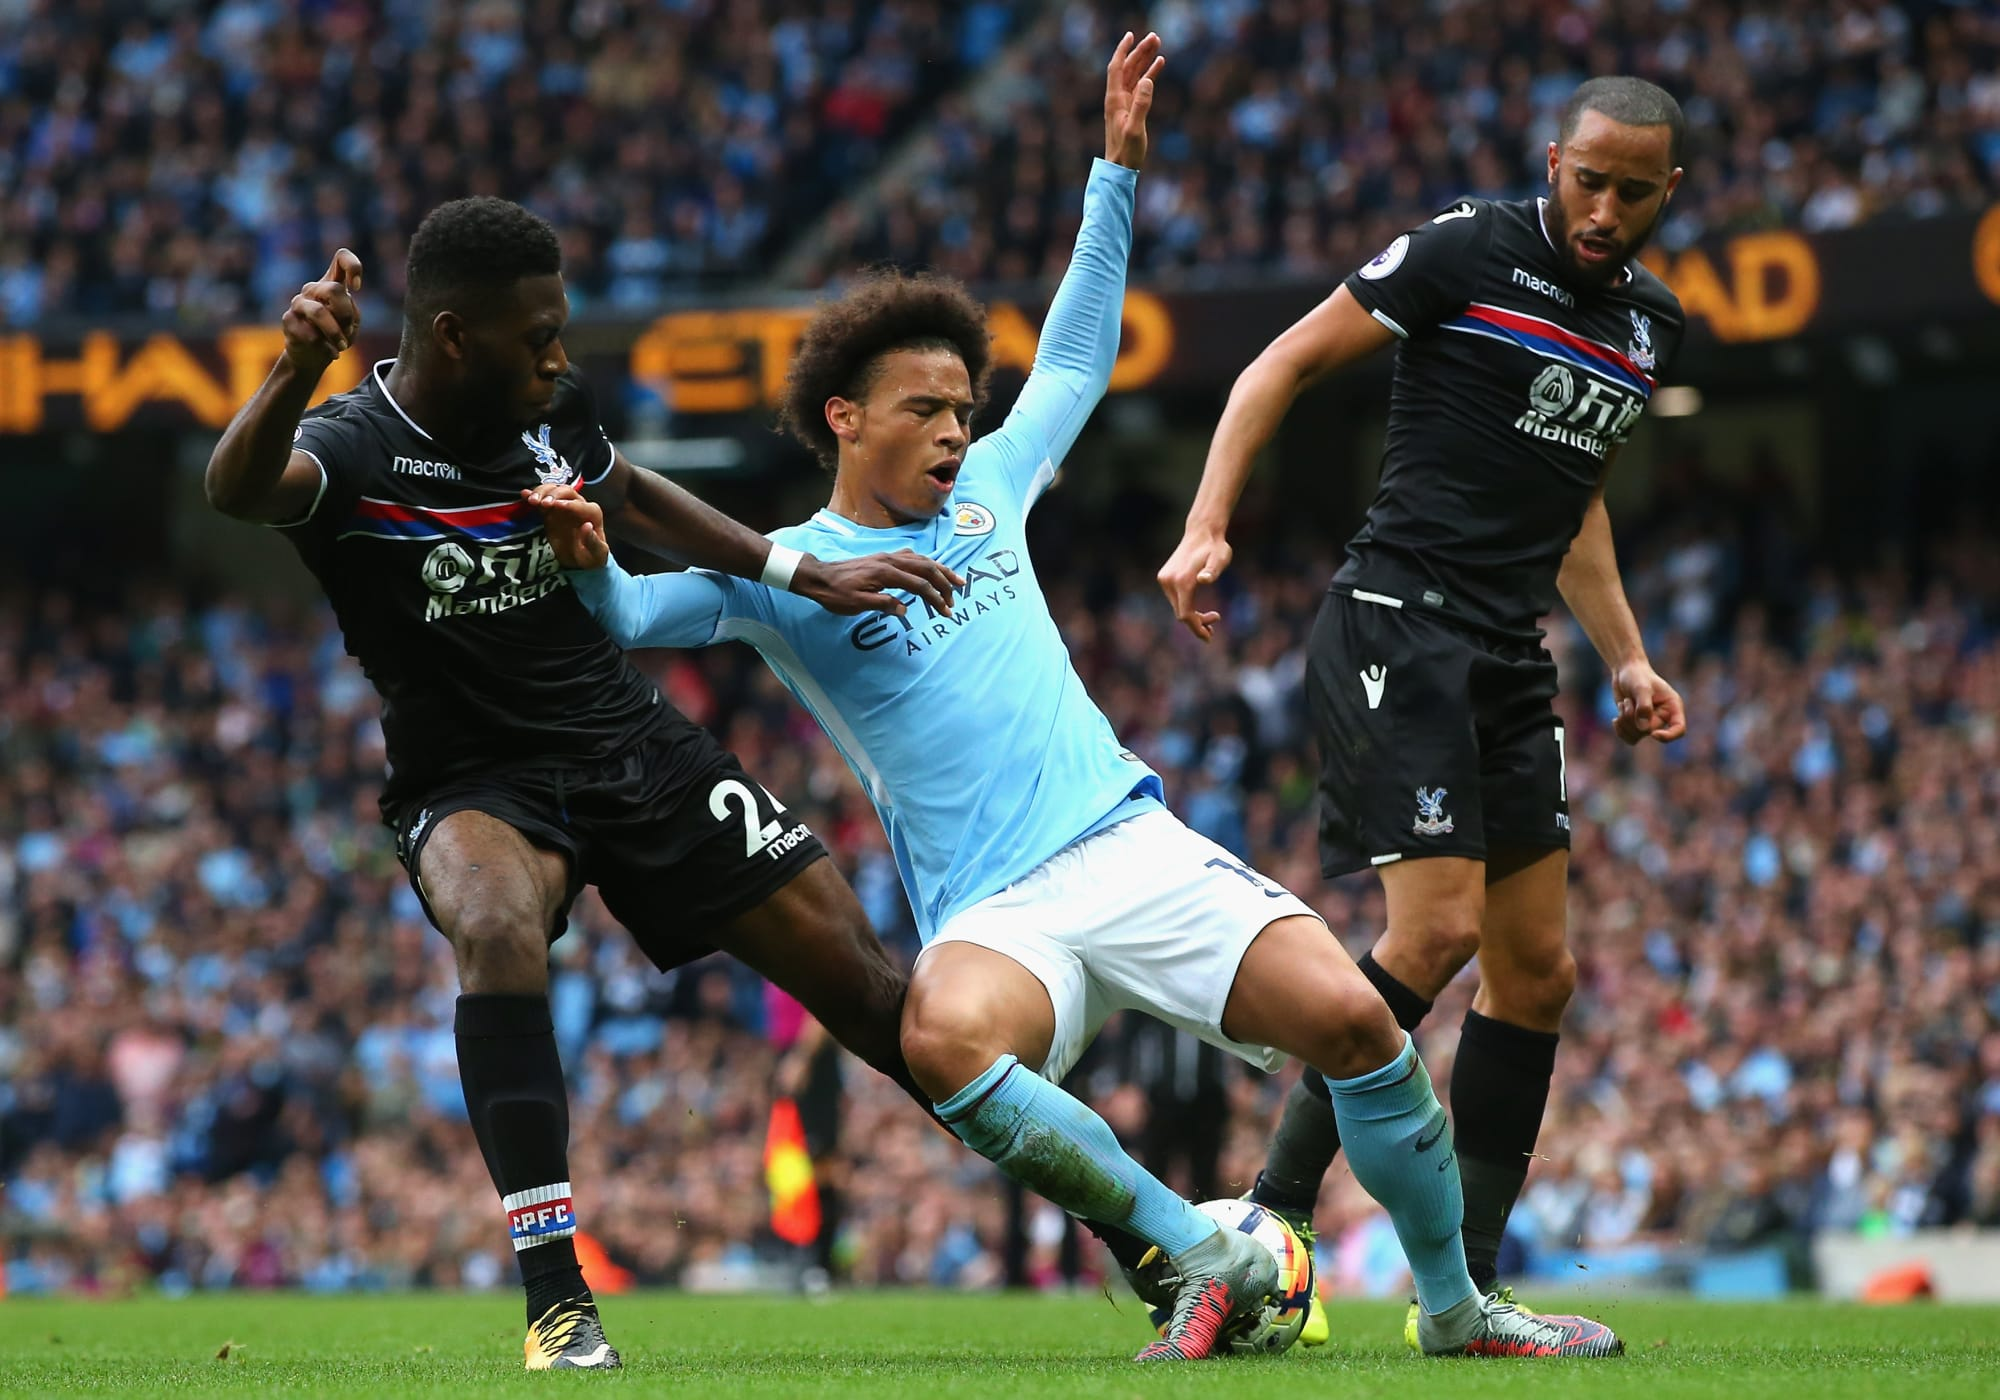 Manchester City: Players Taking On Palace - Page 2